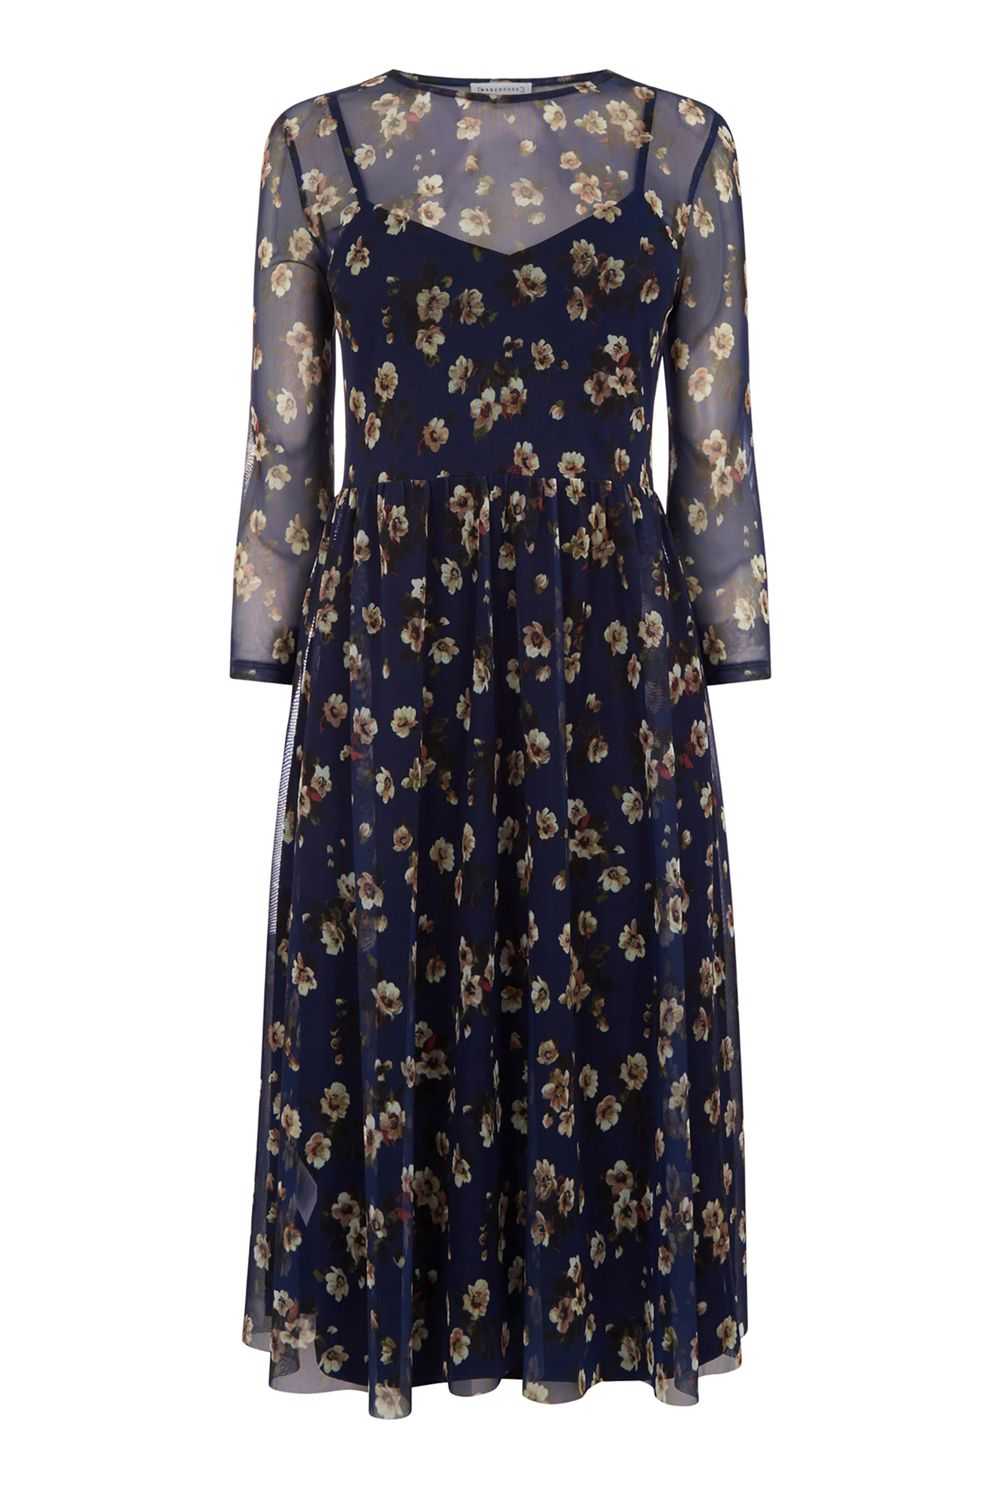 Warehouse Mae Floral Print Mesh Dress, Multi-Coloured